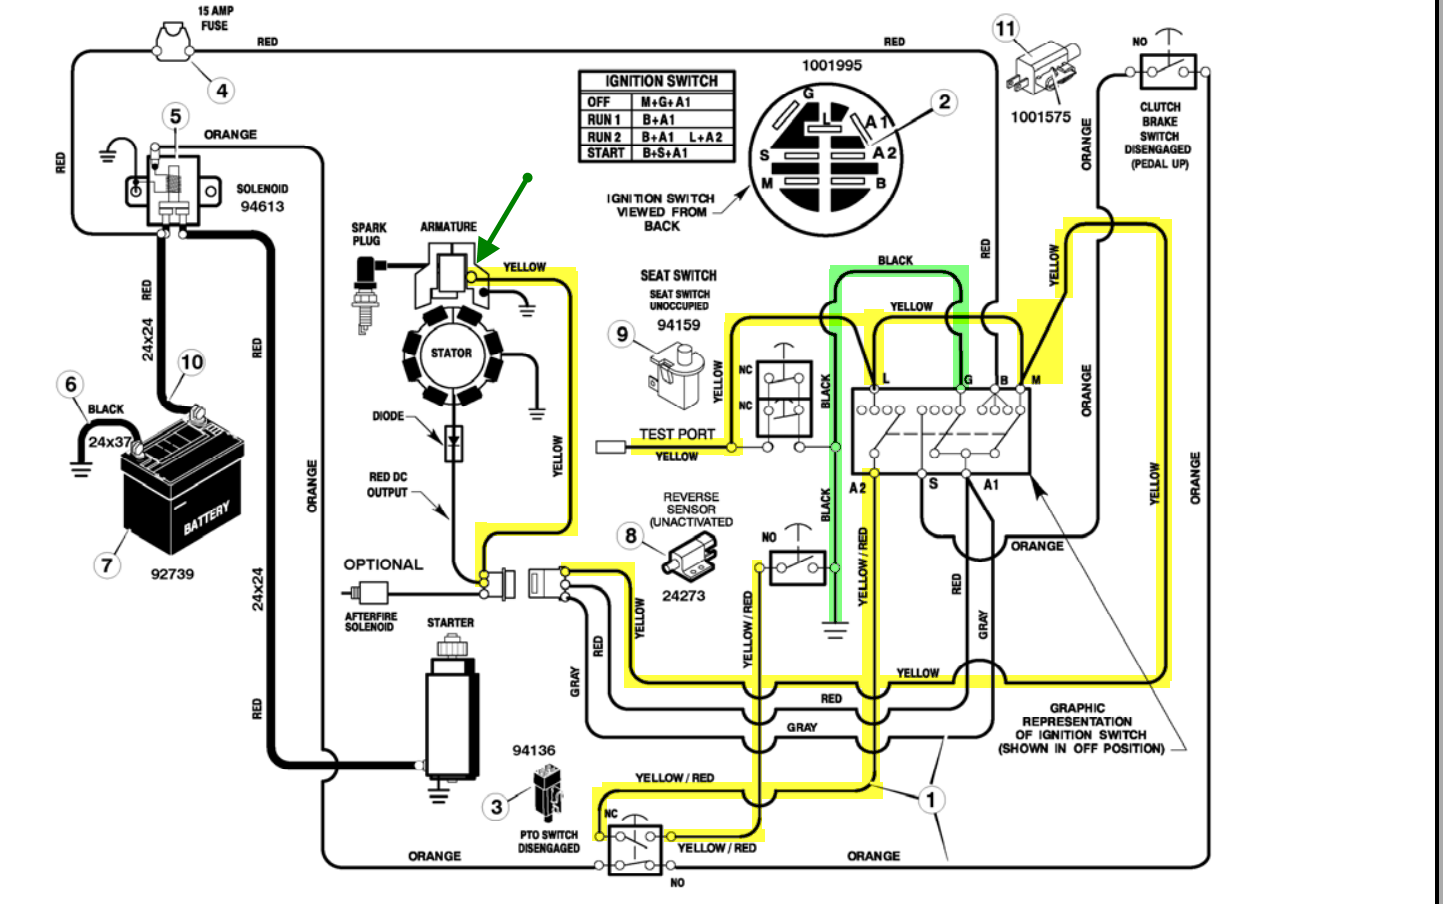 hight resolution of 19 hp briggs and stratton wiring diagram diagrams schematics best of